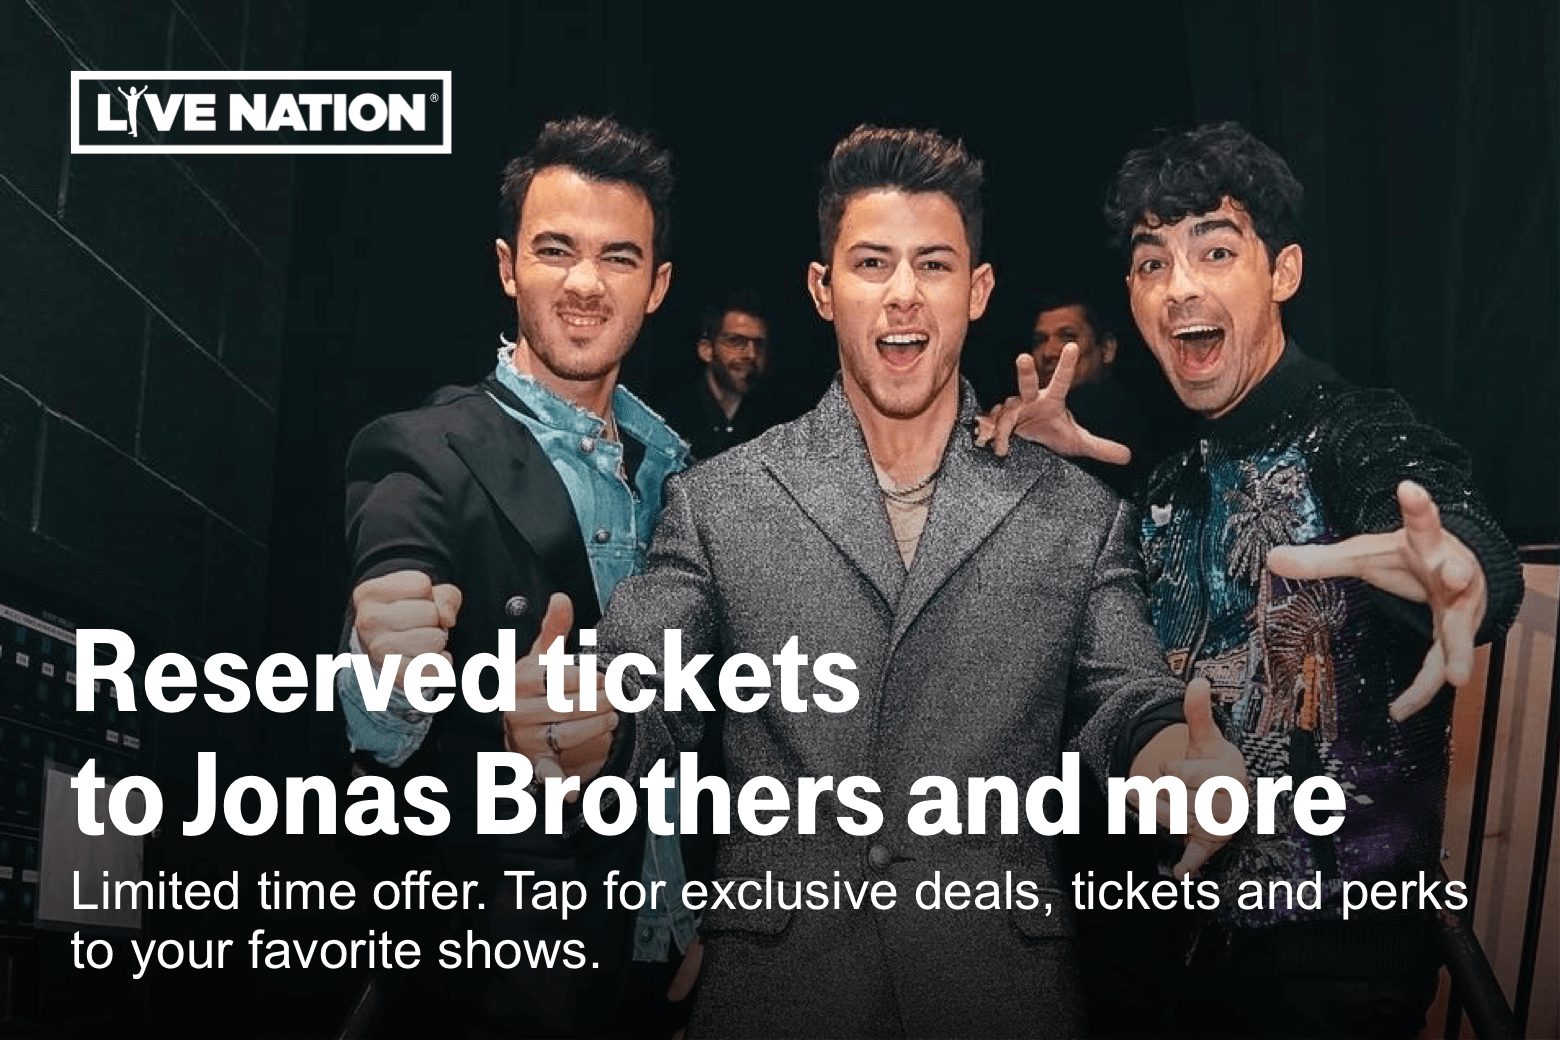 Live Nation. Reserved tickets to Jonas Brothers and more. Limited time offer. Tap for exclusive deals, tickets and perks to your favorite shows.